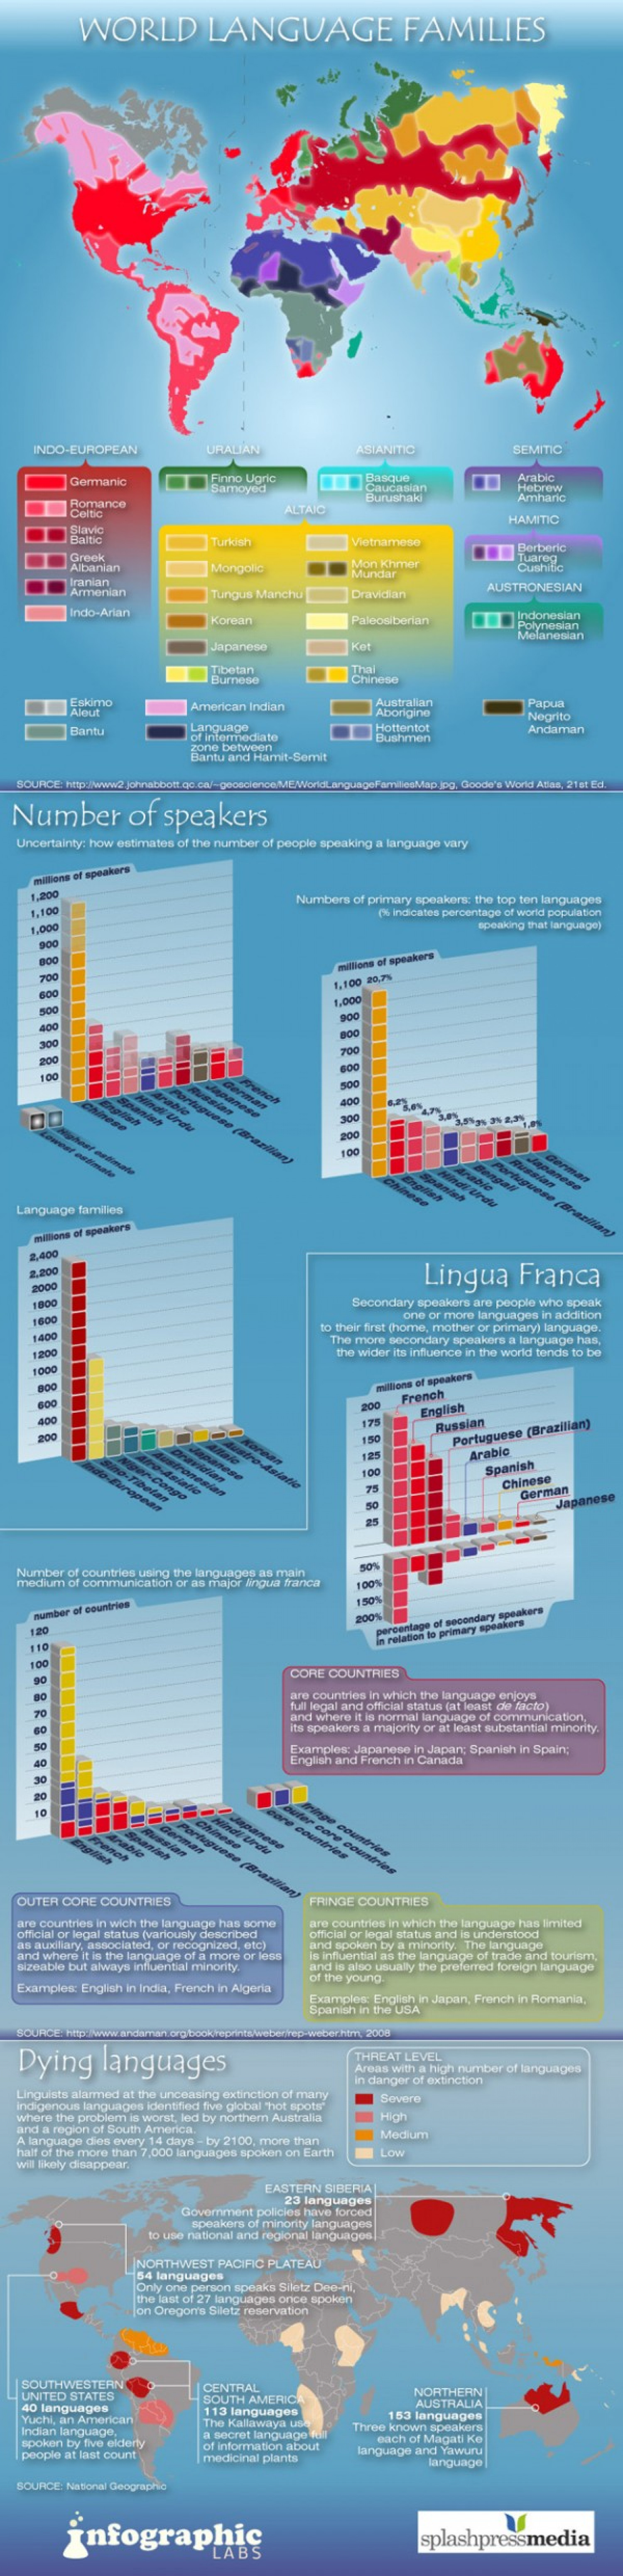 World Language Families Infographic